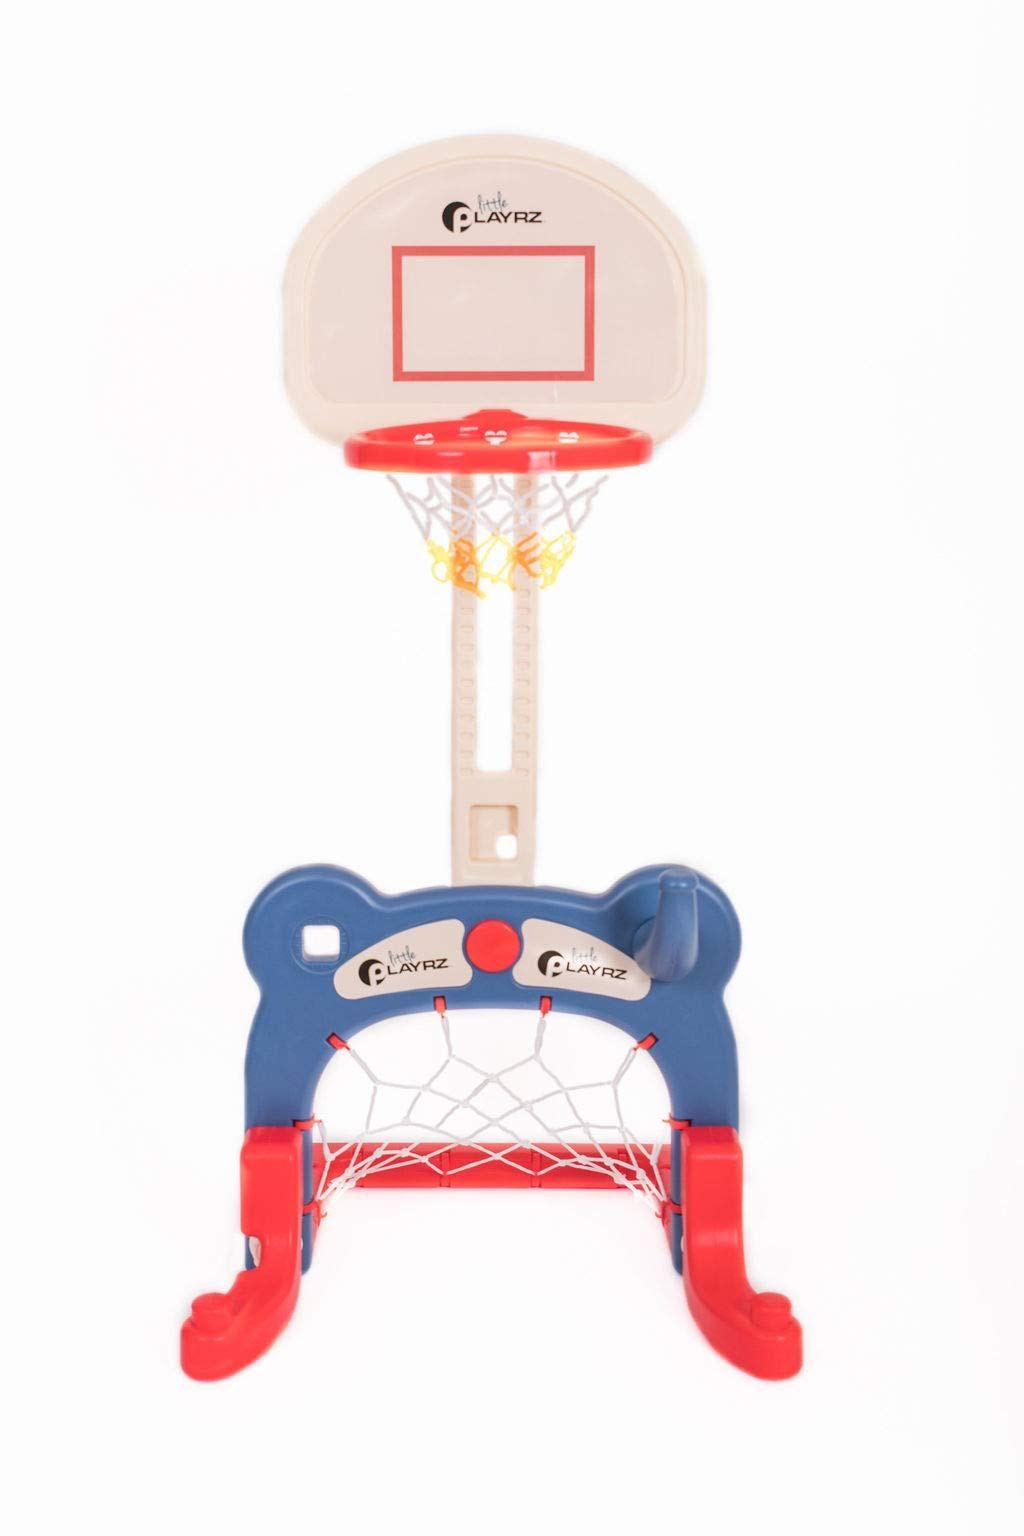 Kids 3 In 1 Sports Center Basketball Hoop Soccer Goal Ring Toss Playset Soccer Goal Basketball Hoop Adjustable Basketball Hoop